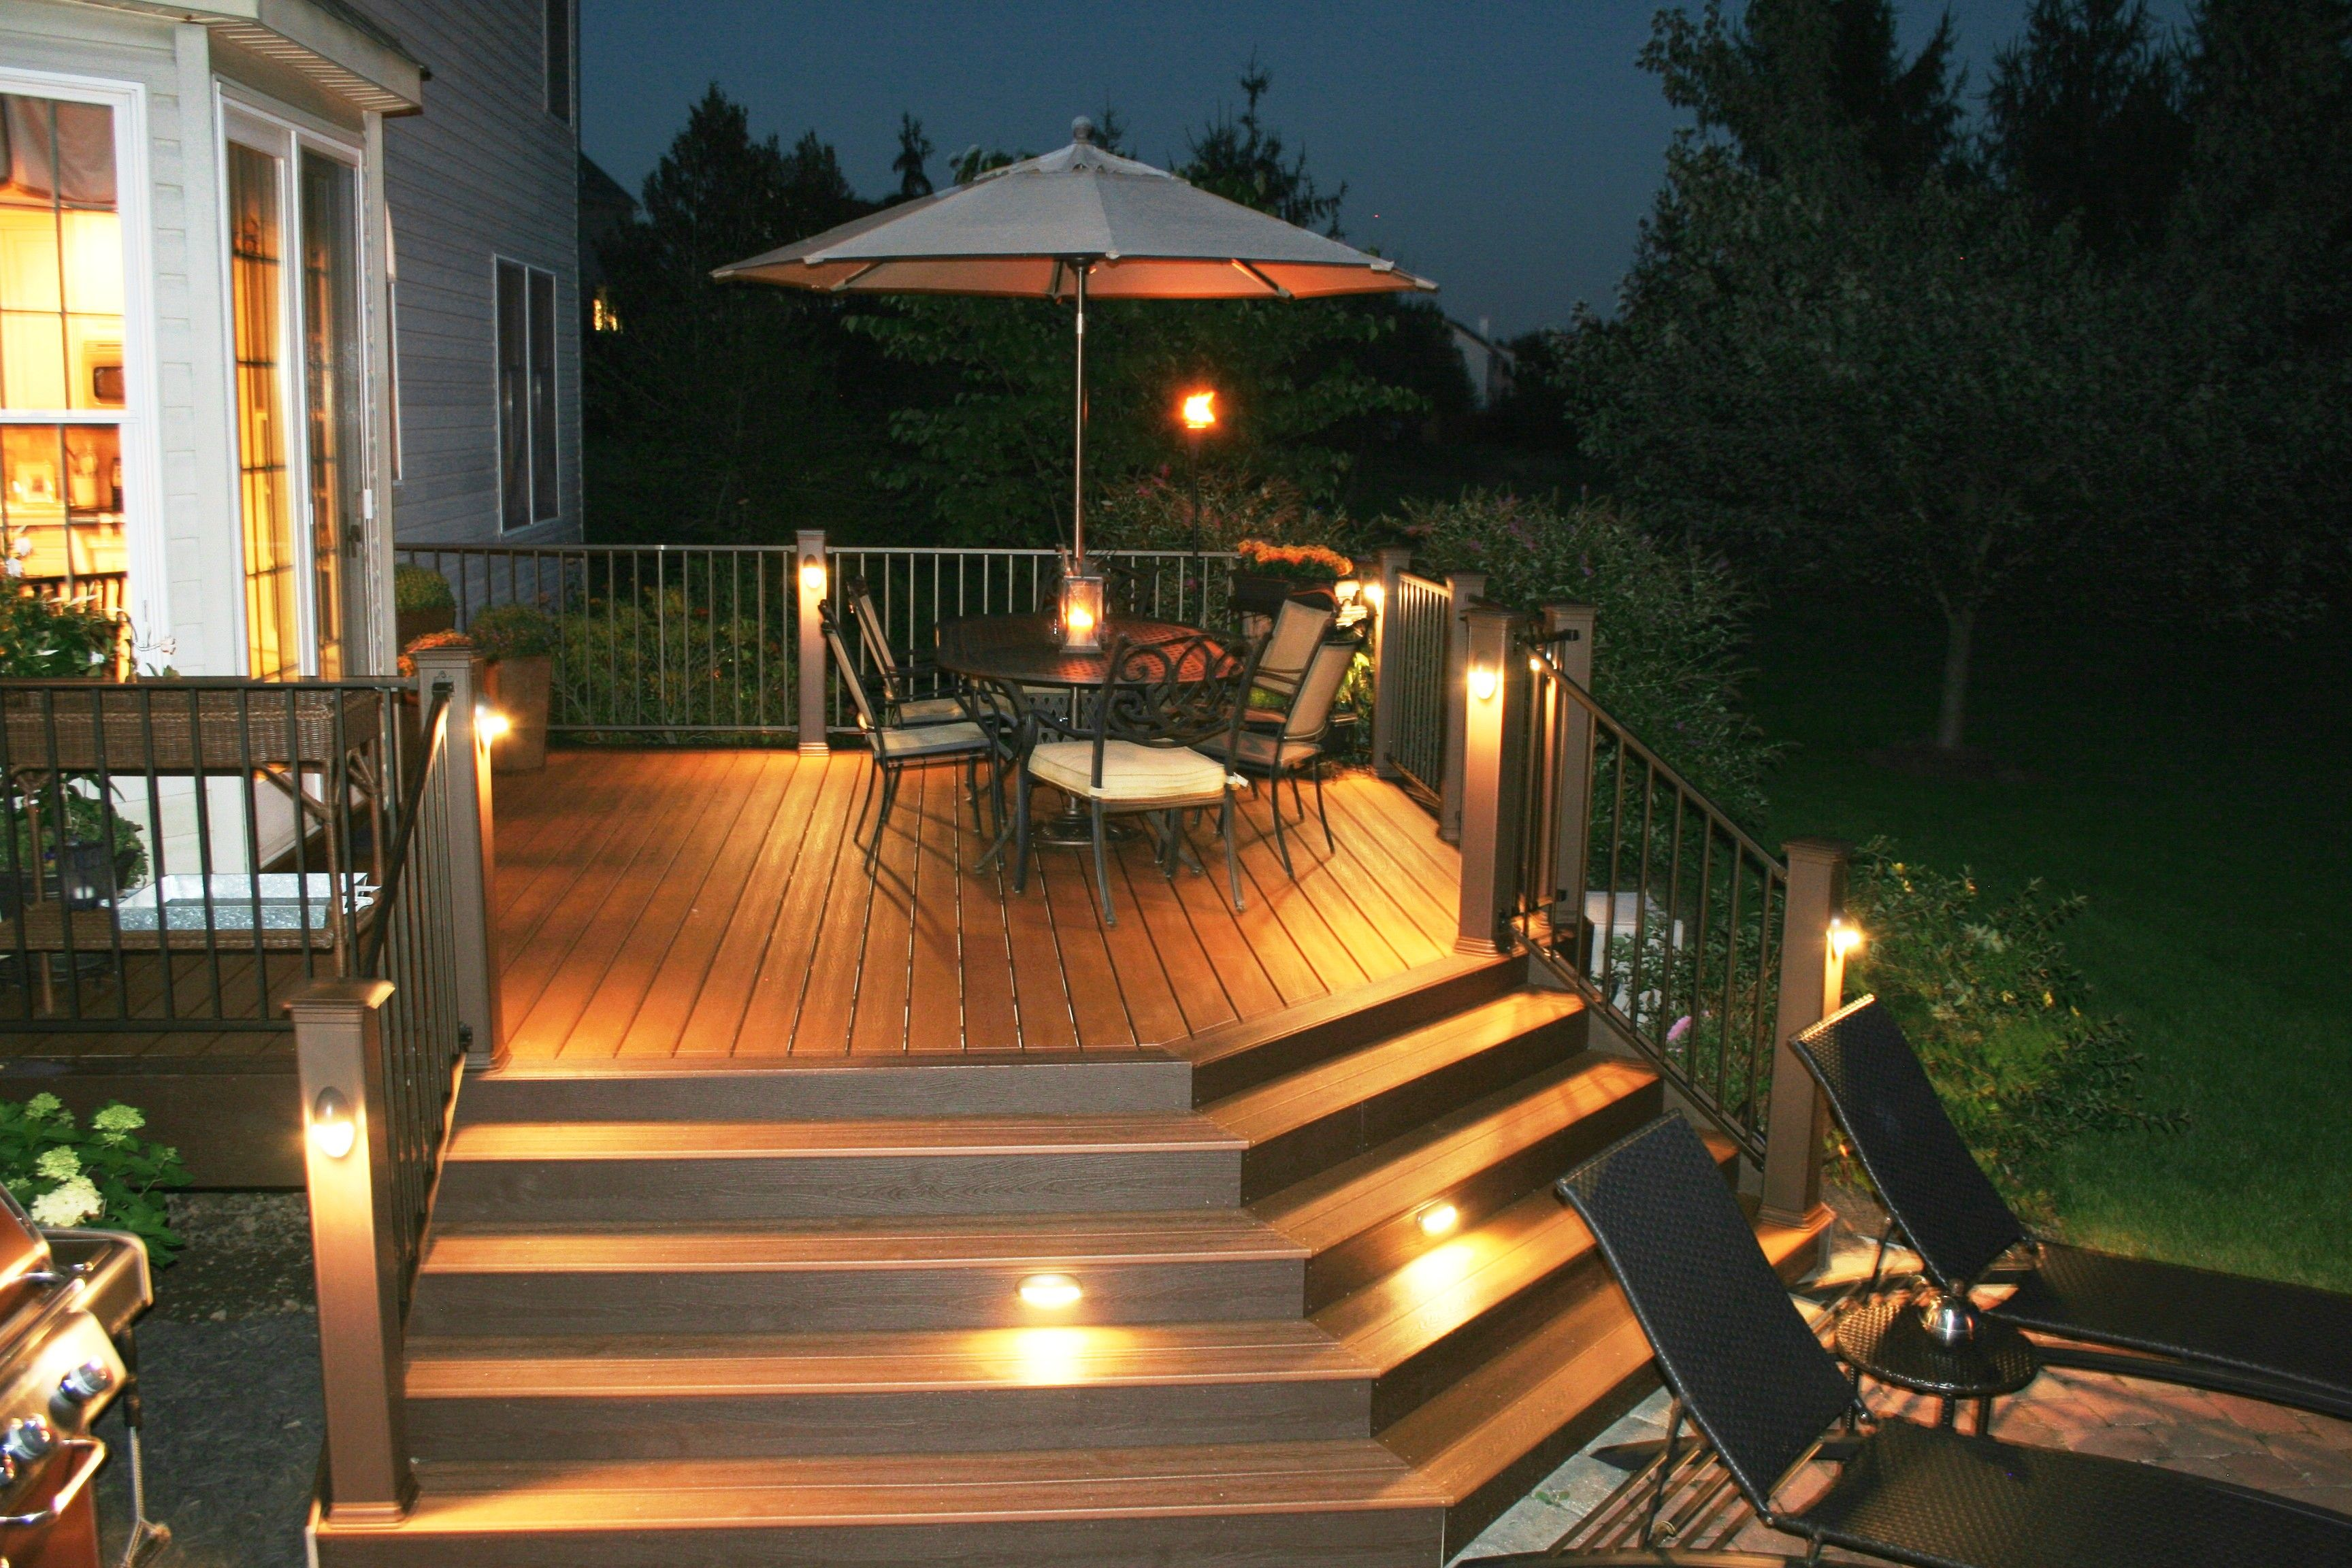 deck lighting accent lighting lighting design lighting ideas outdoor